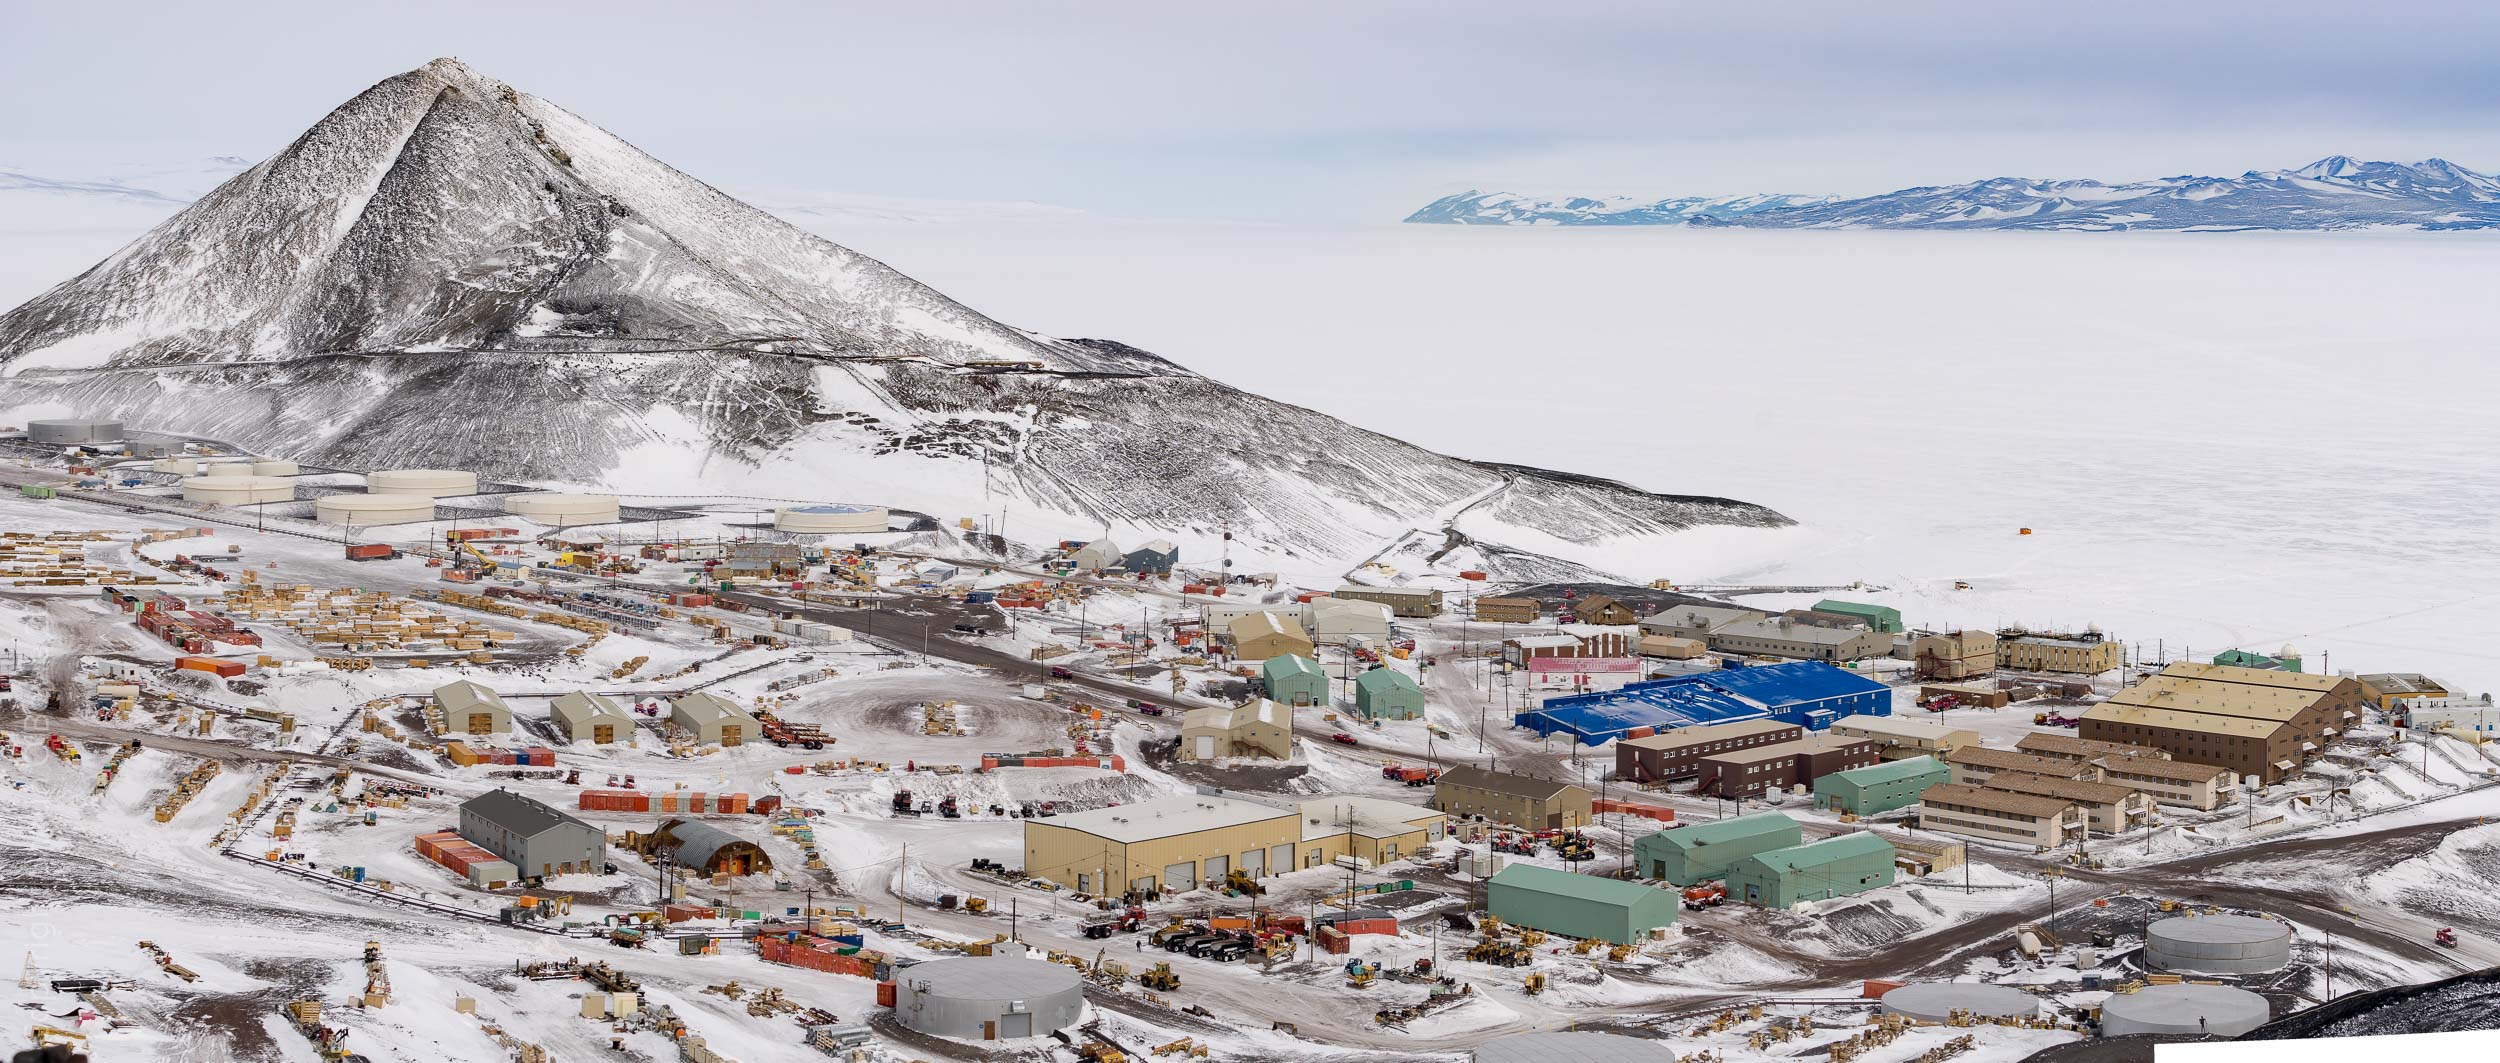 McMurdo Station and Observation Hill from the Hut Point Ridge Loop Trail.